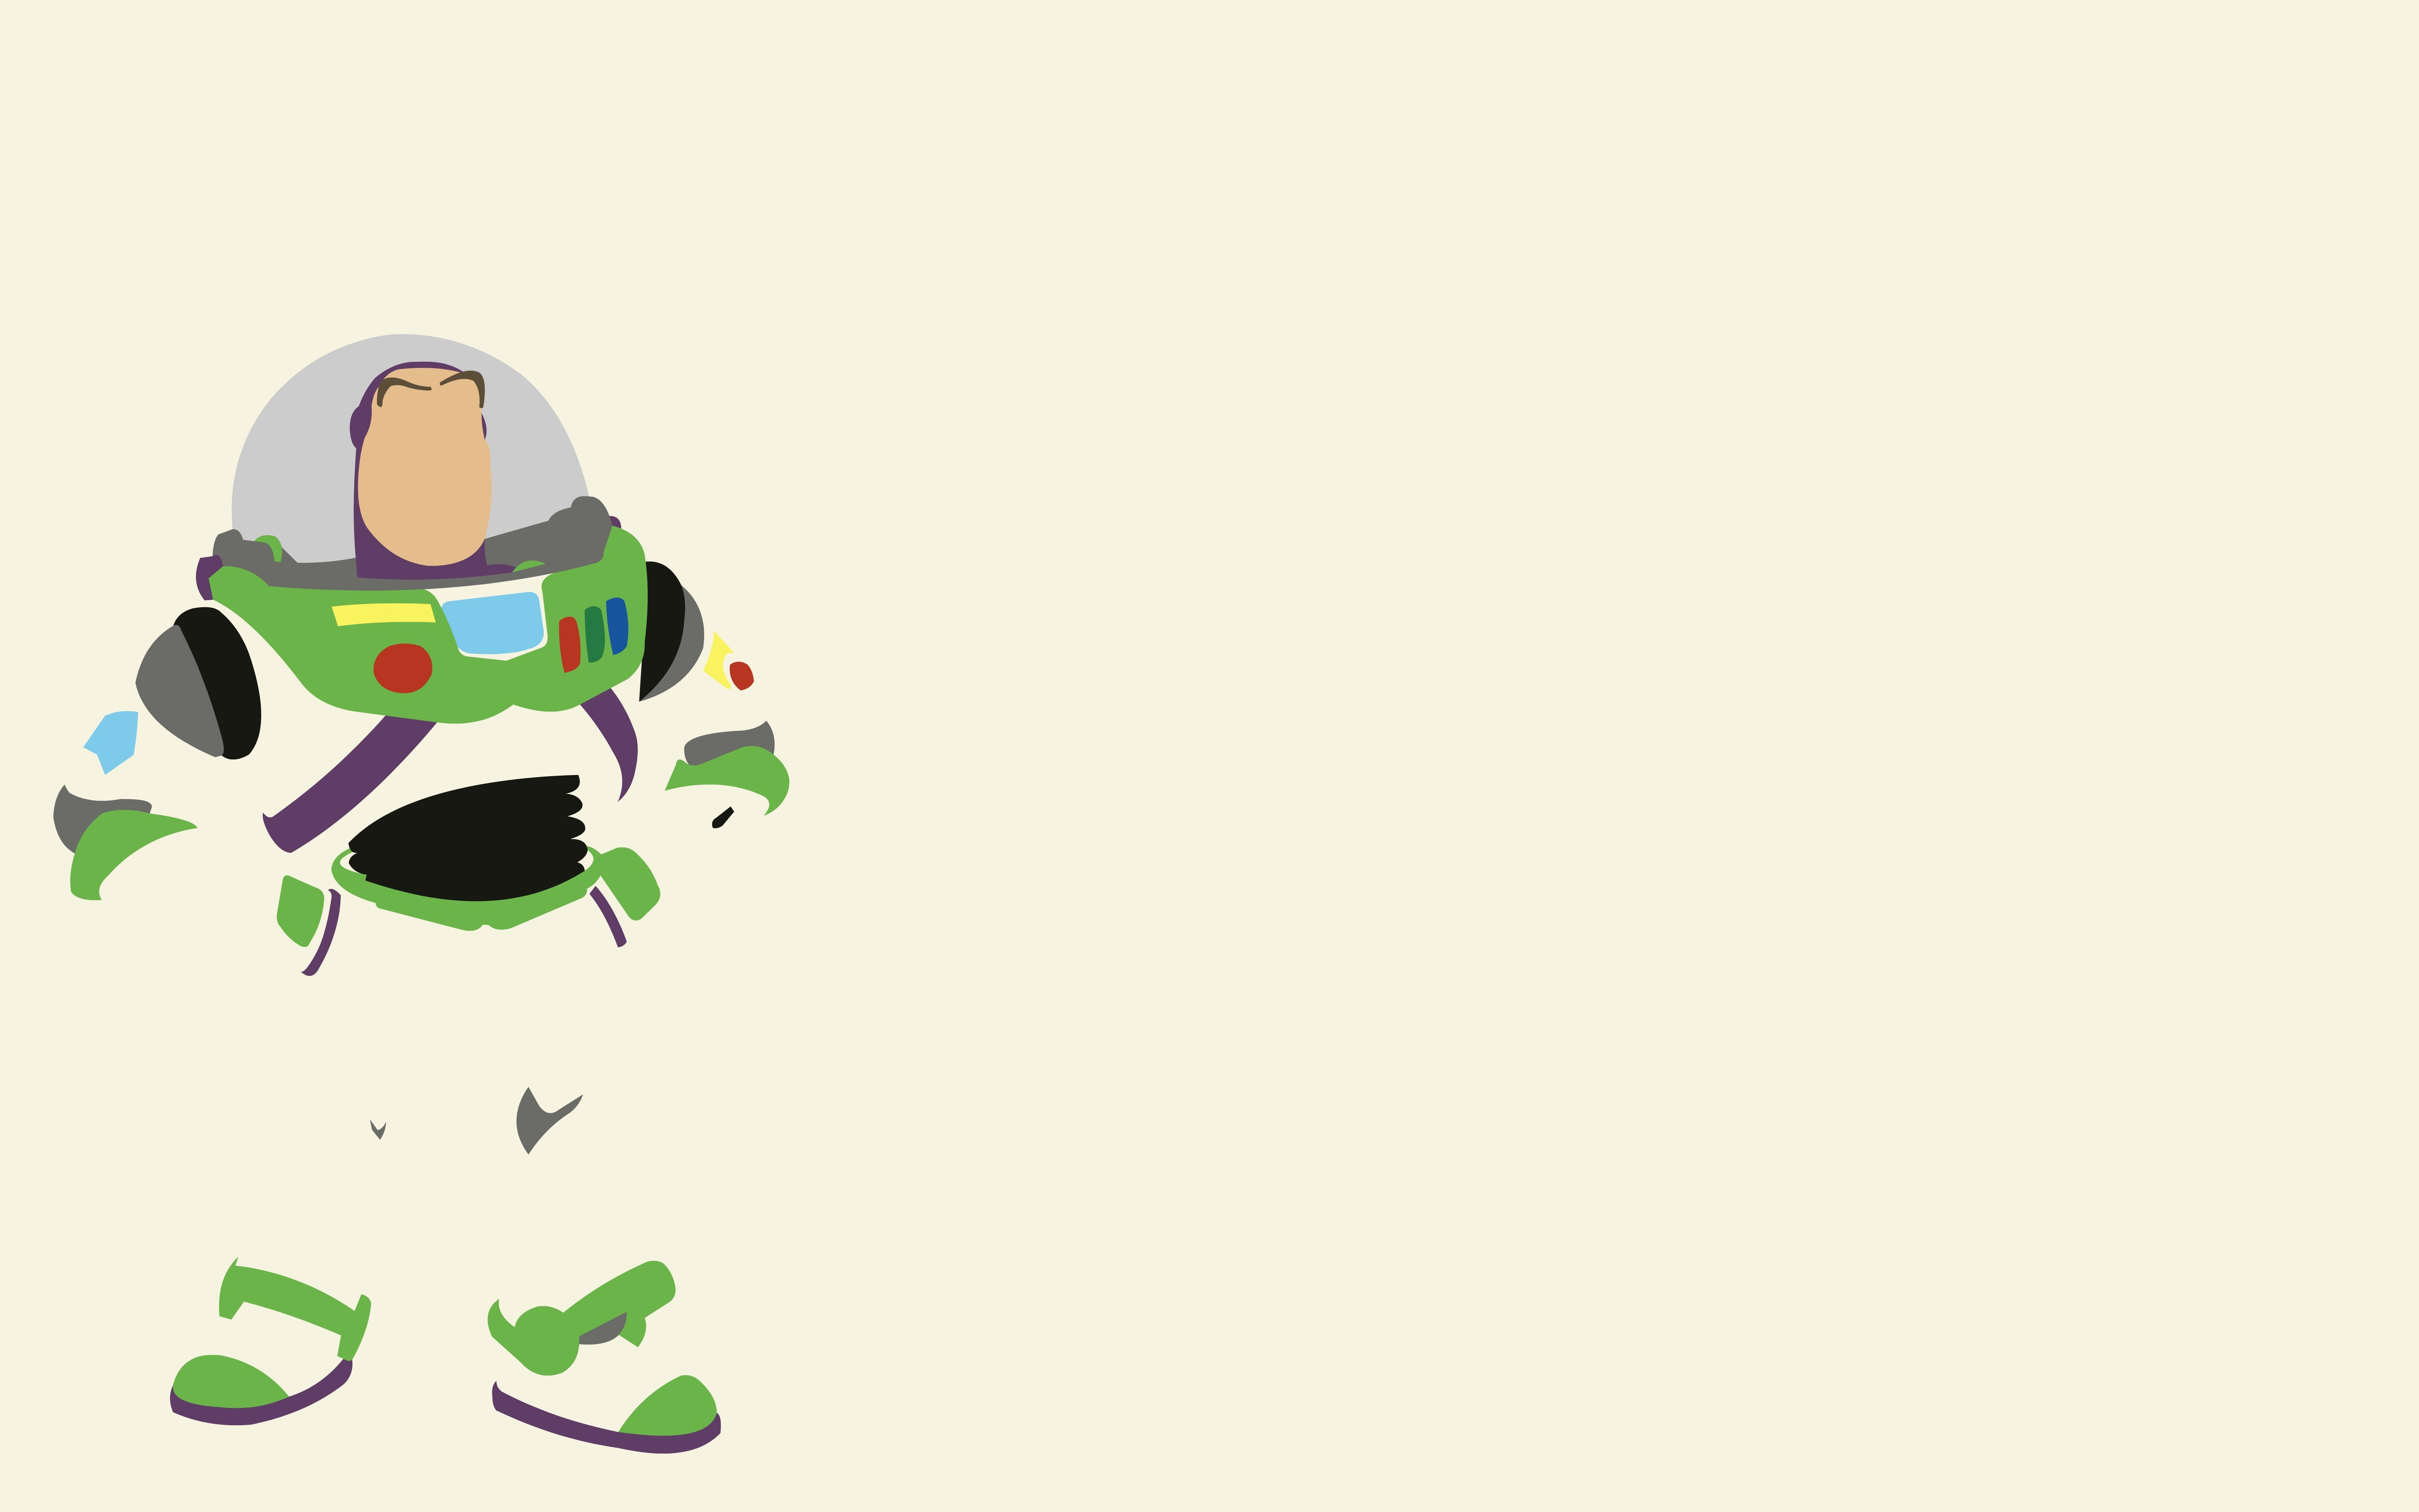 Toy story minimalism hd artist 4k wallpapers images - Toy story wallpaper ...